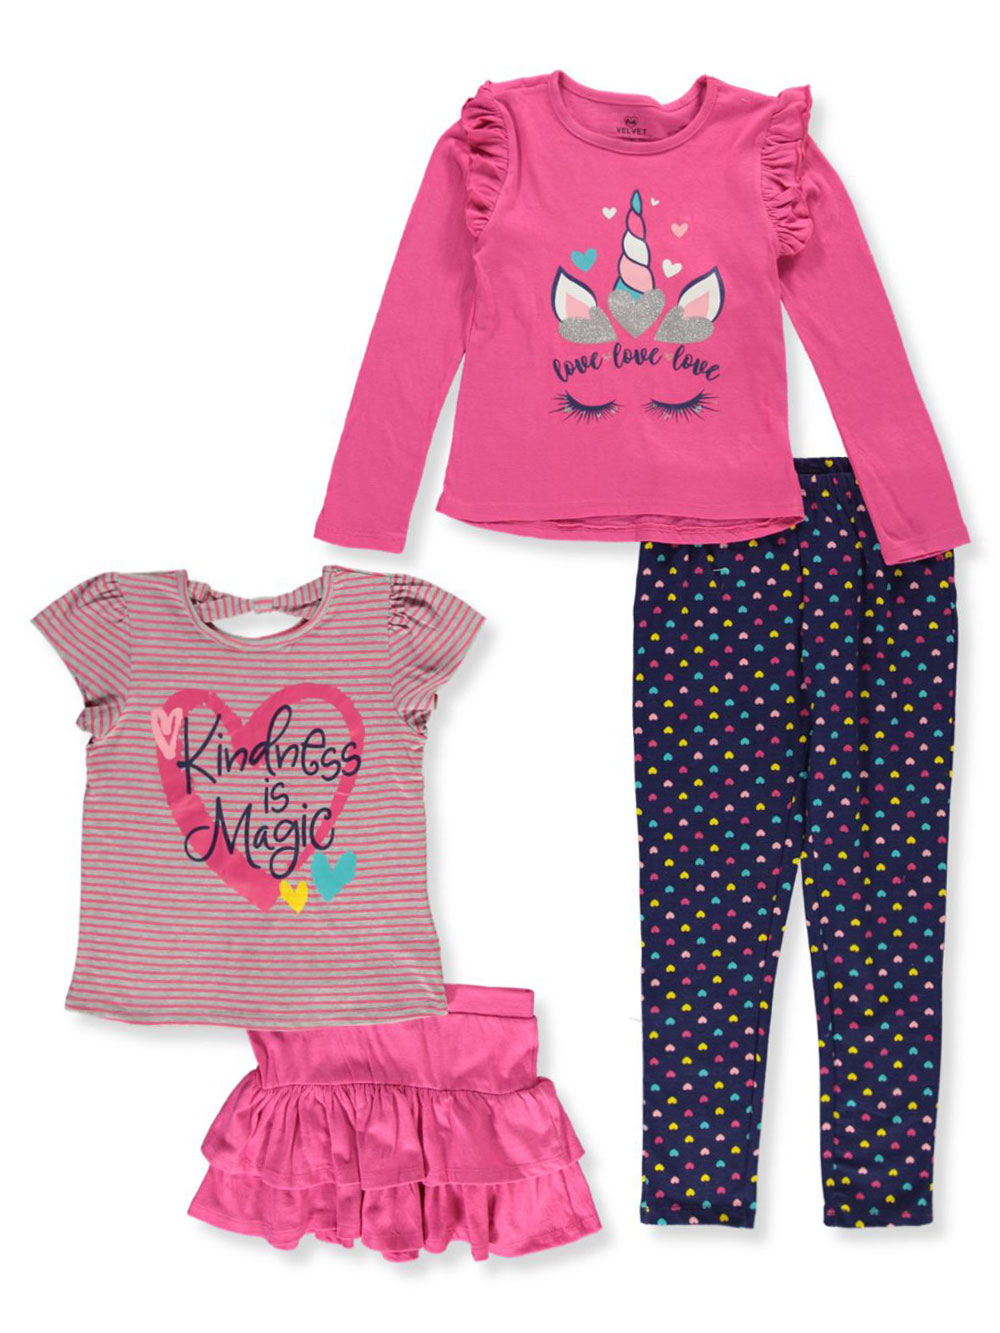 Pant Sets 4-Piece Outfit Set